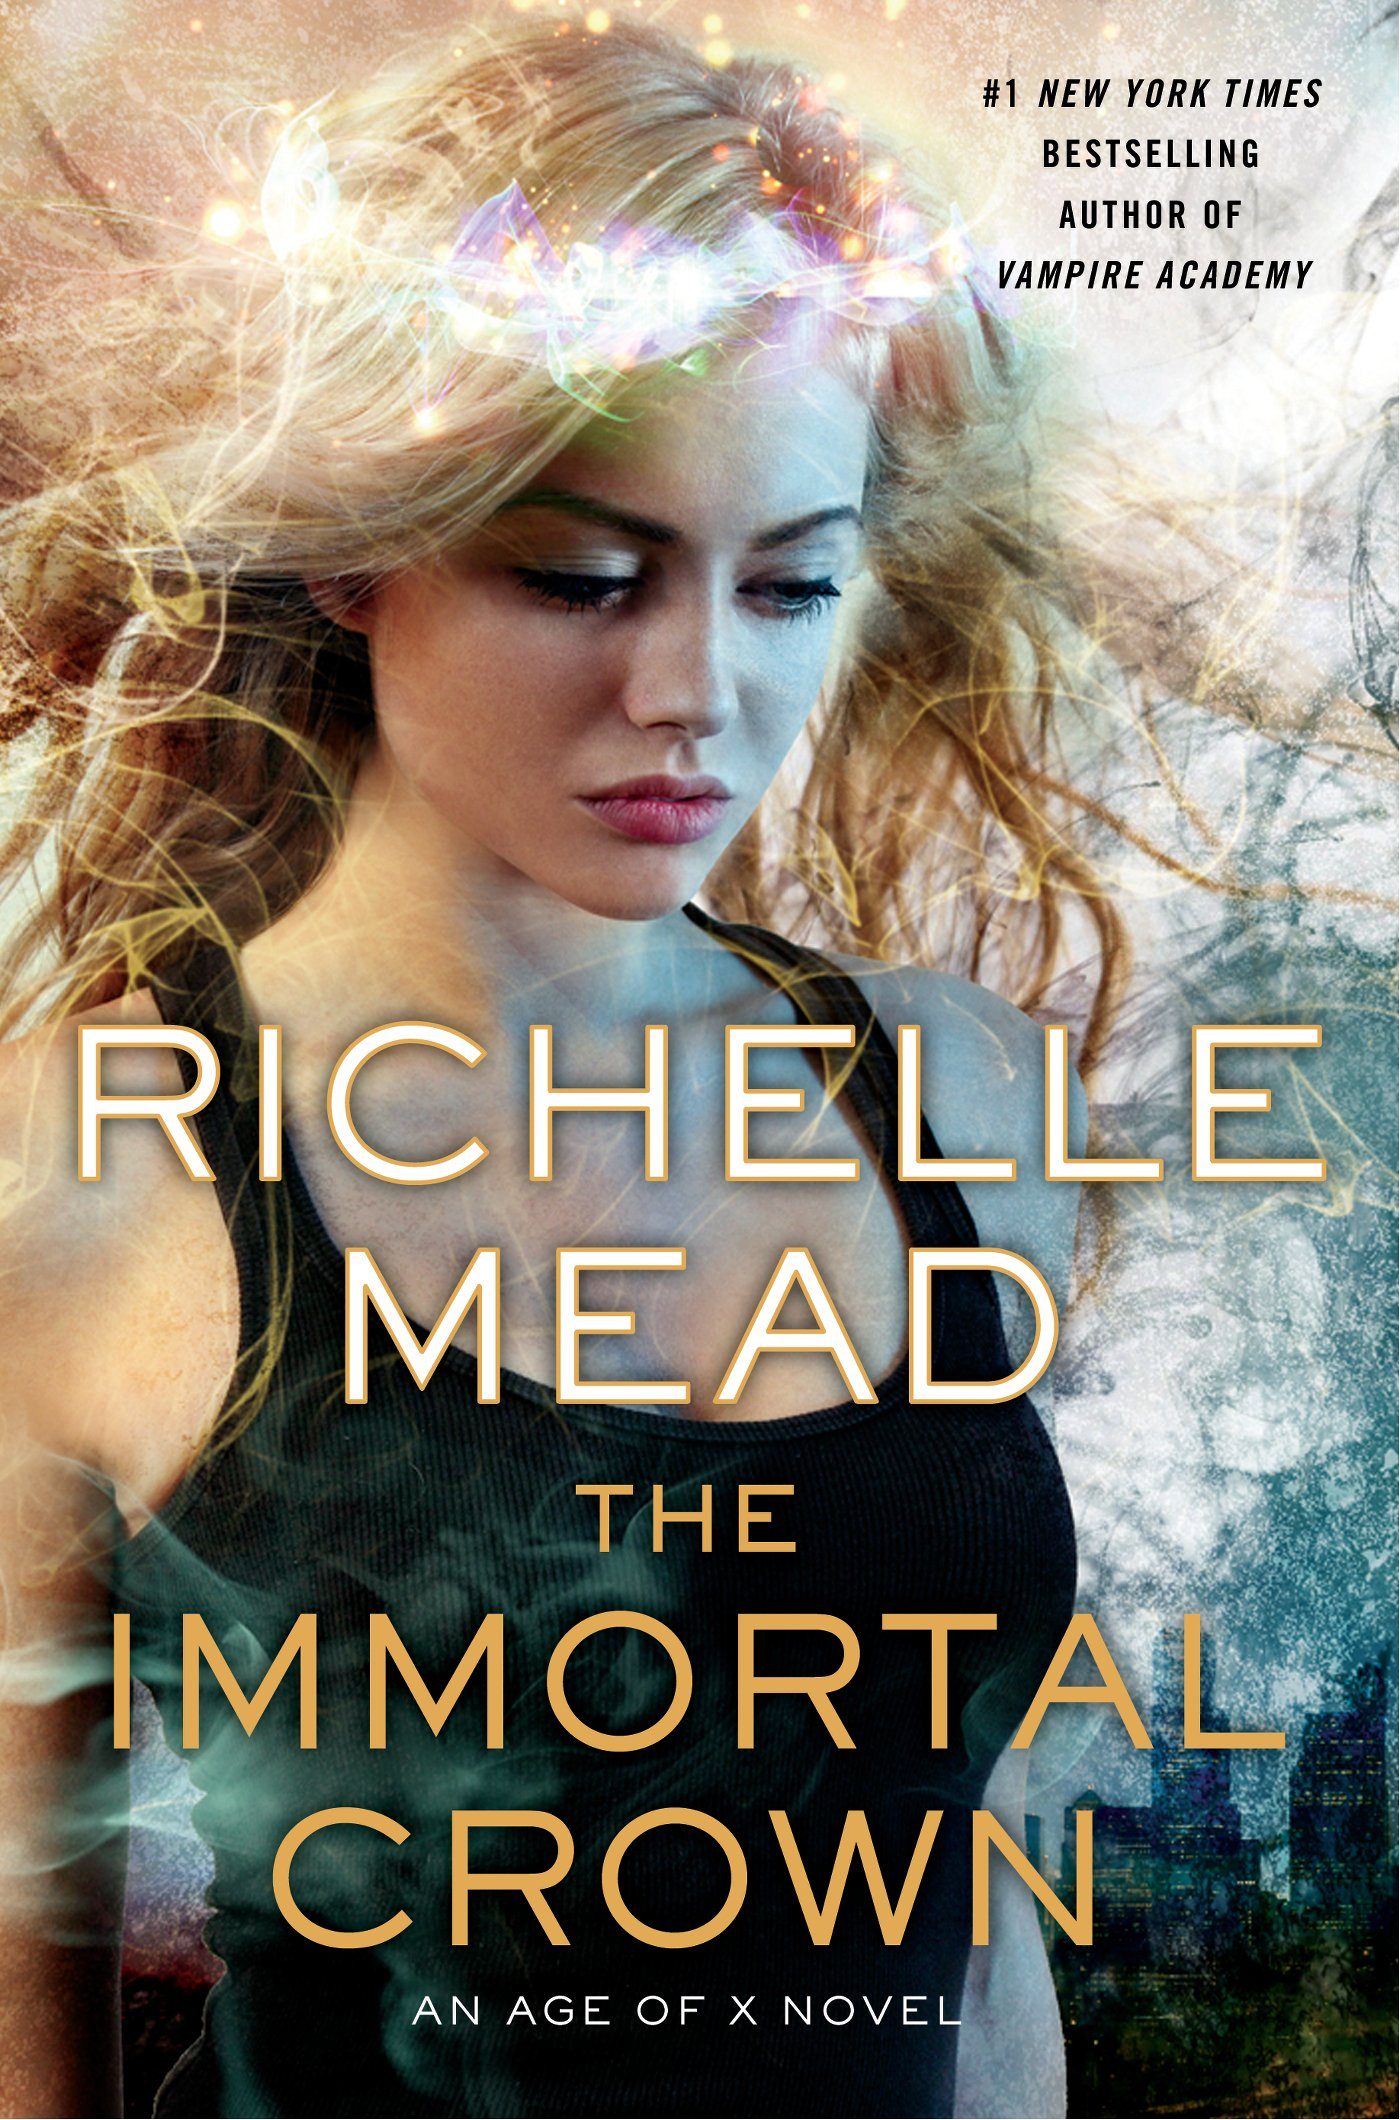 The Immortal Crown: An Age of X Novel - Richelle Mead